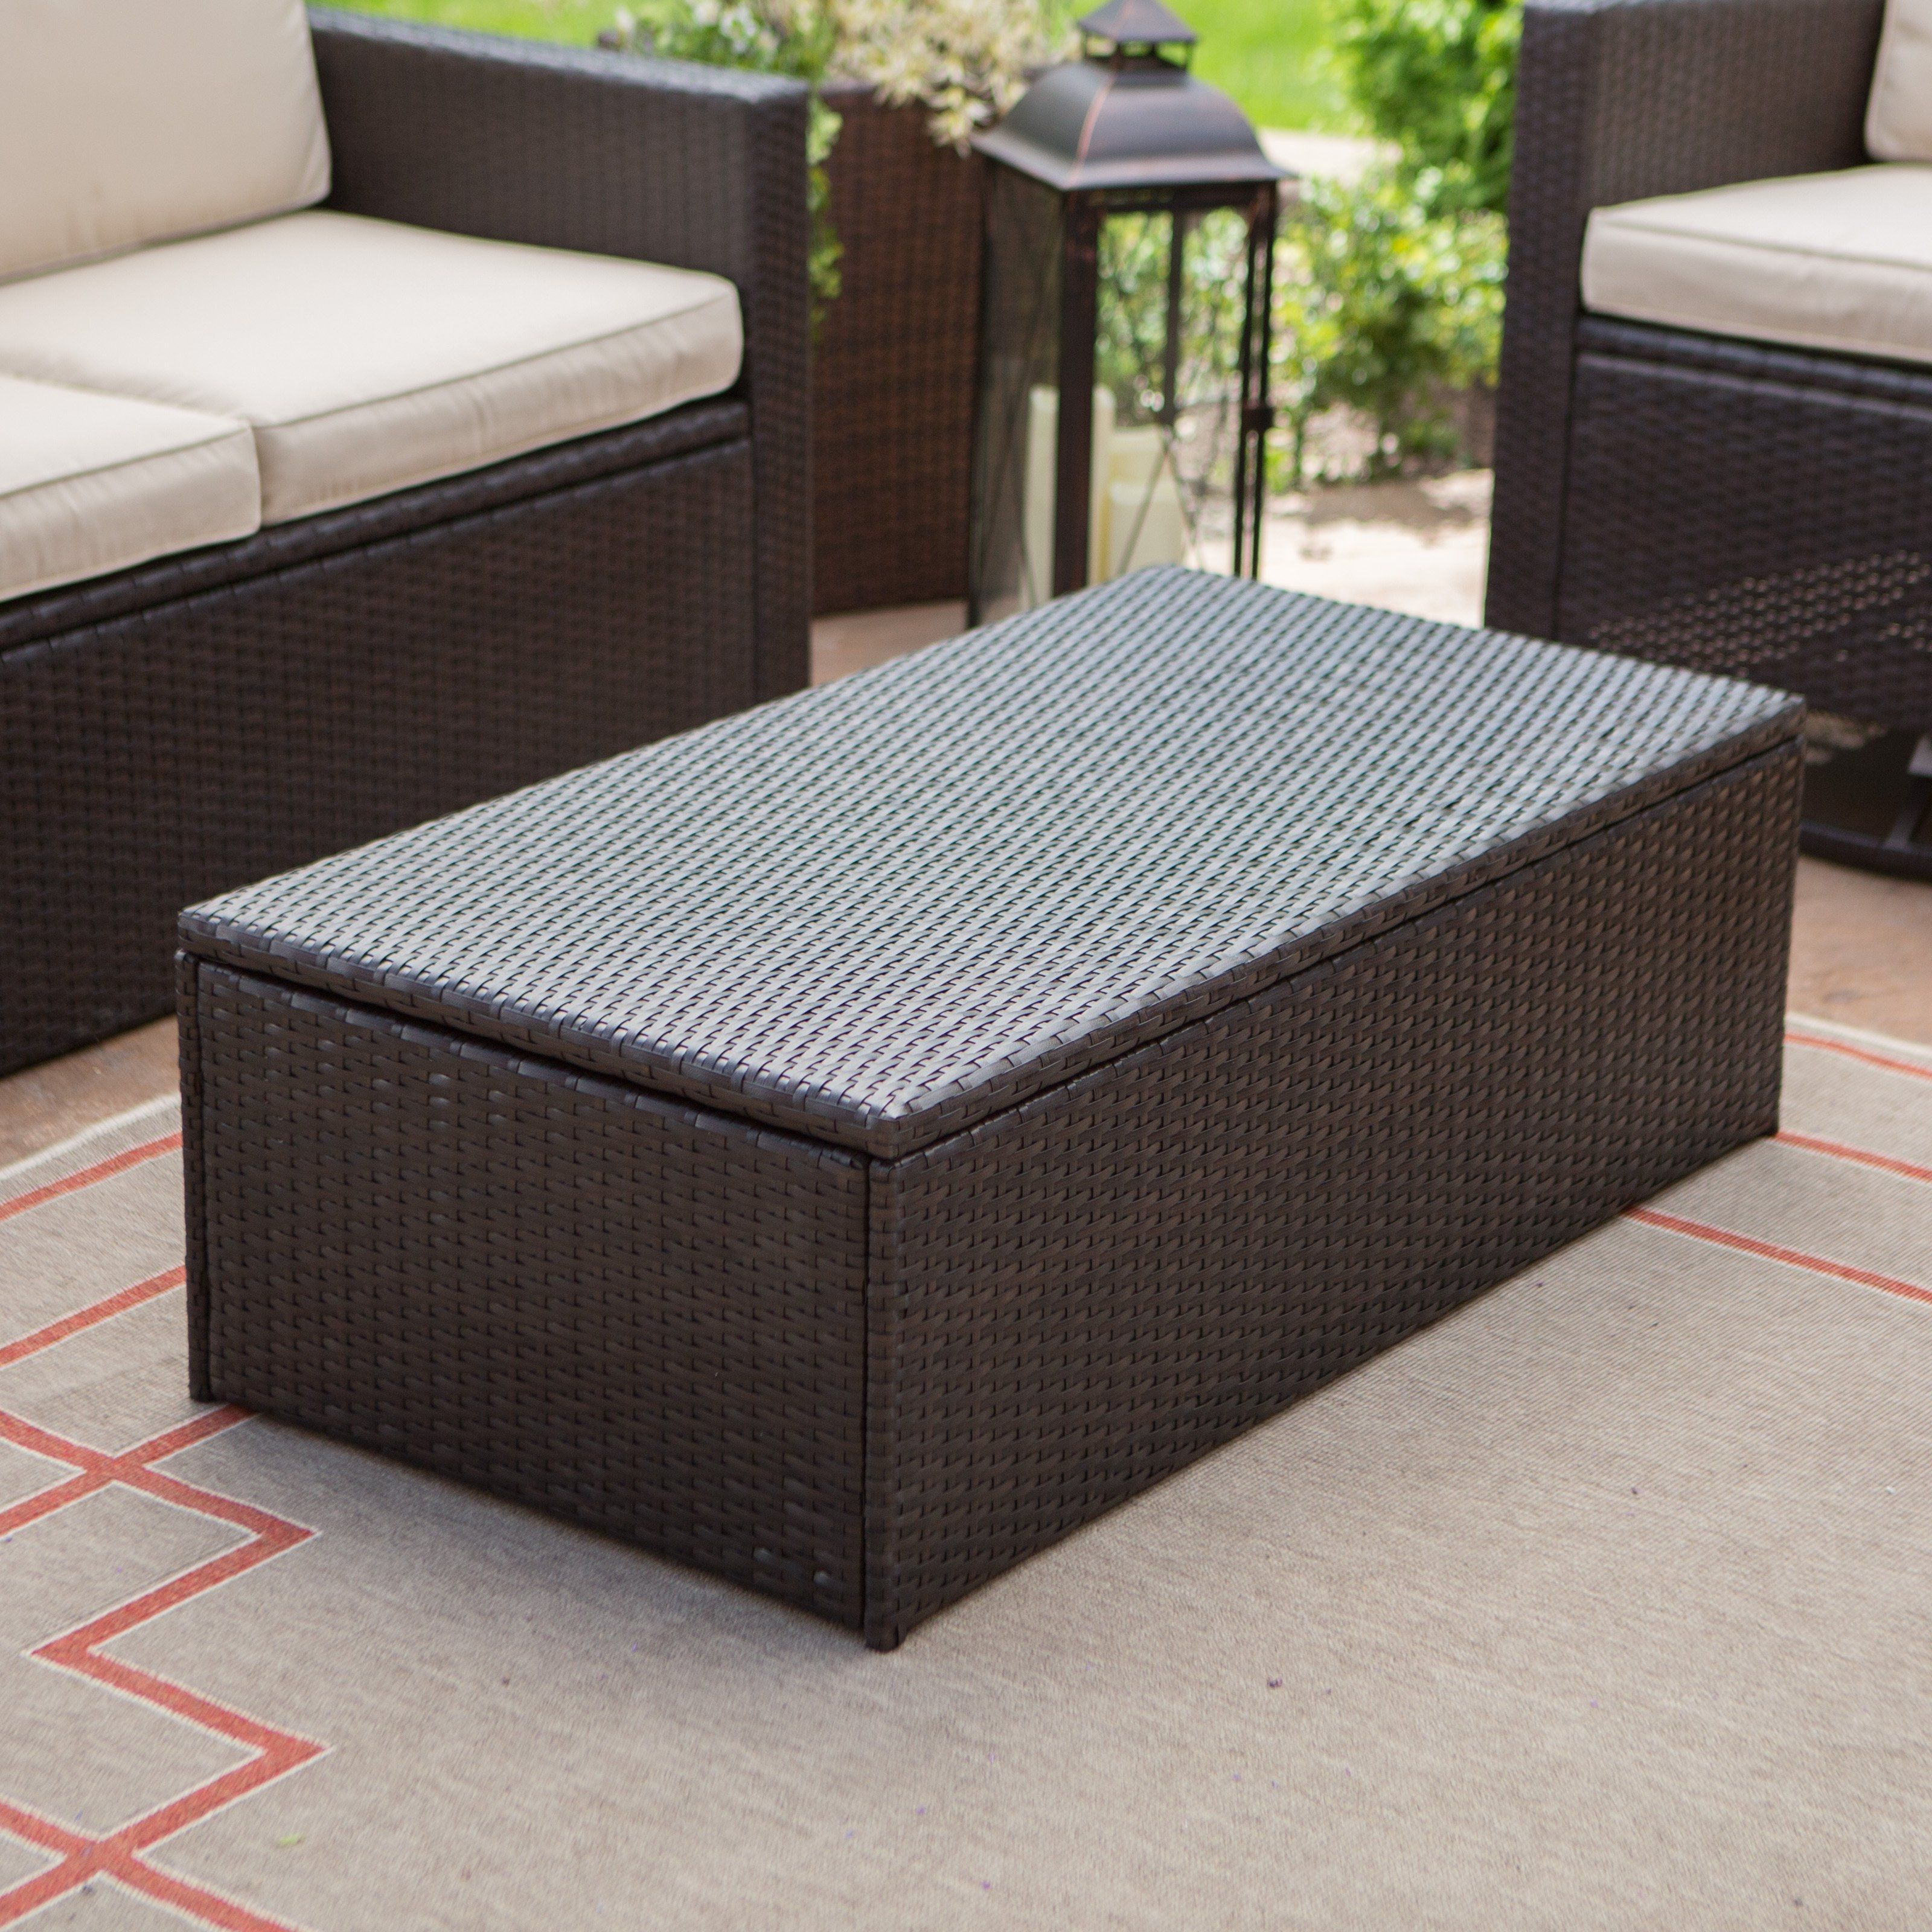 Outdoor wicker coffee table with storage no home will soon be complete without the furniture coffee table sets are amongs